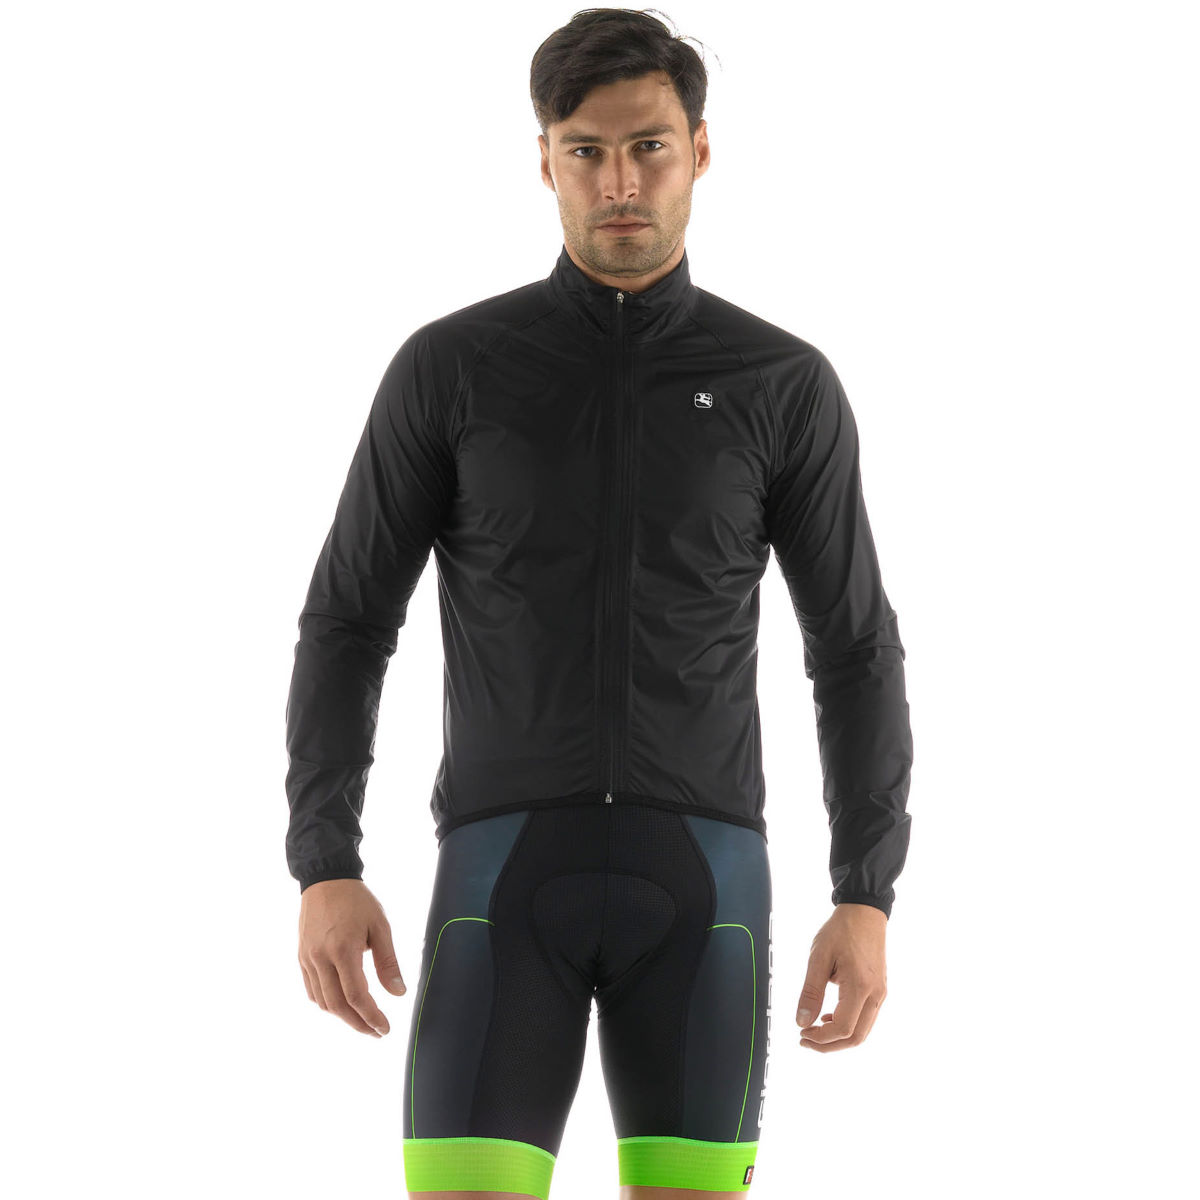 Giordana Hydroshield Jacket